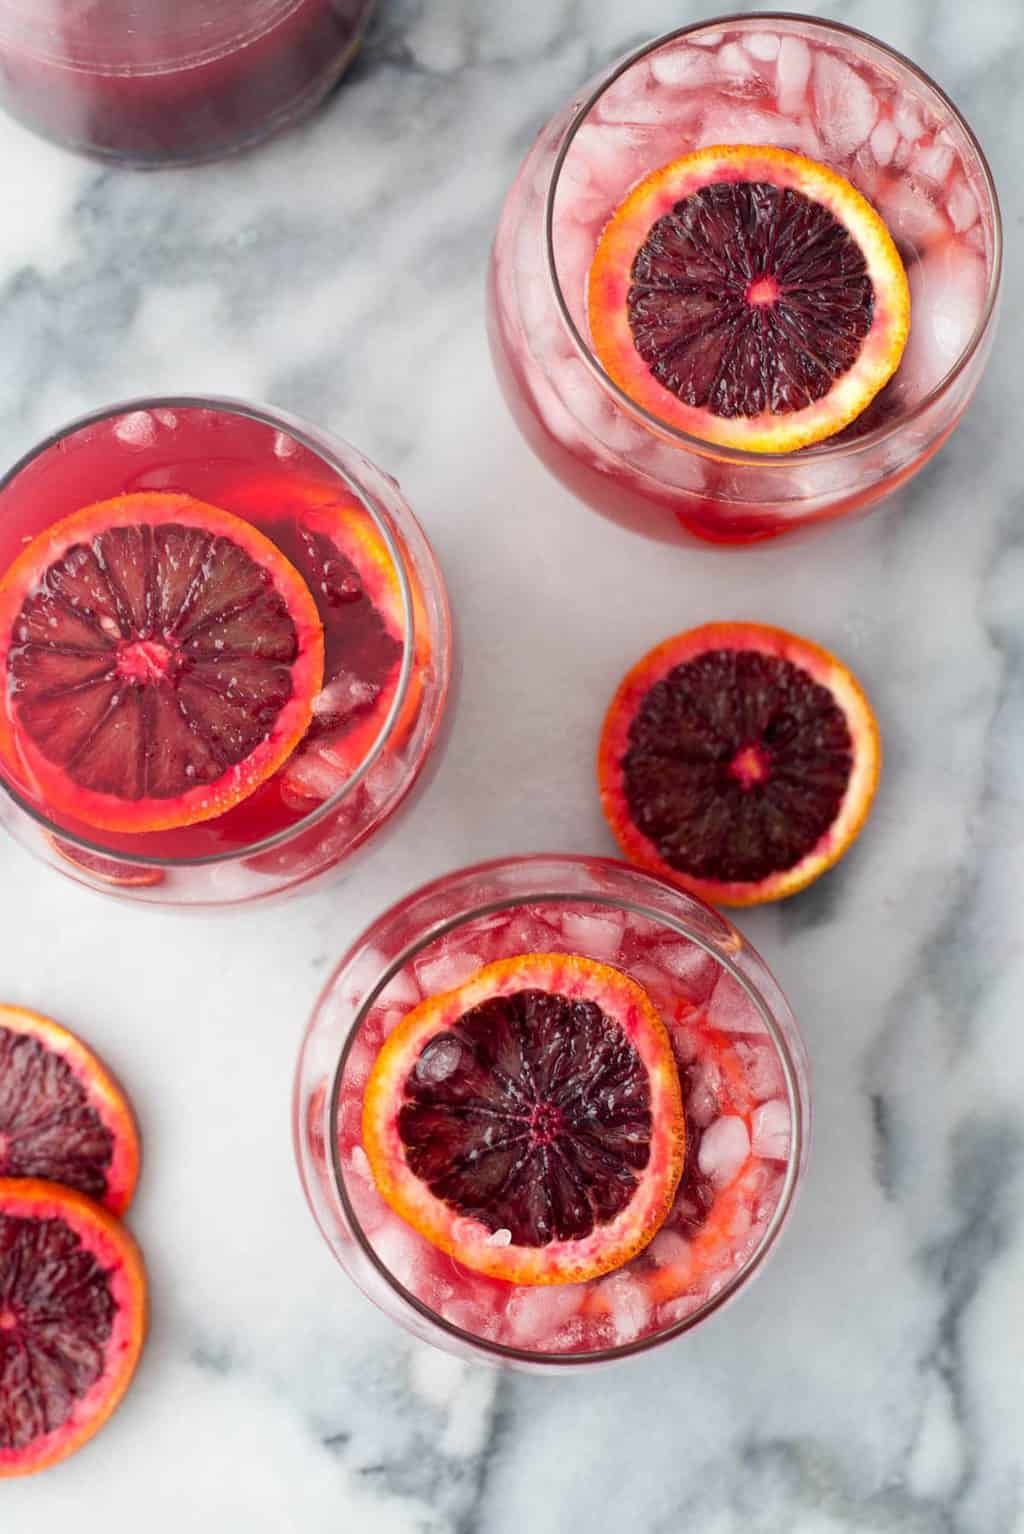 Blood orange sangria recipe by Sugar & Cloth, an award winning DIY and recipe blog.